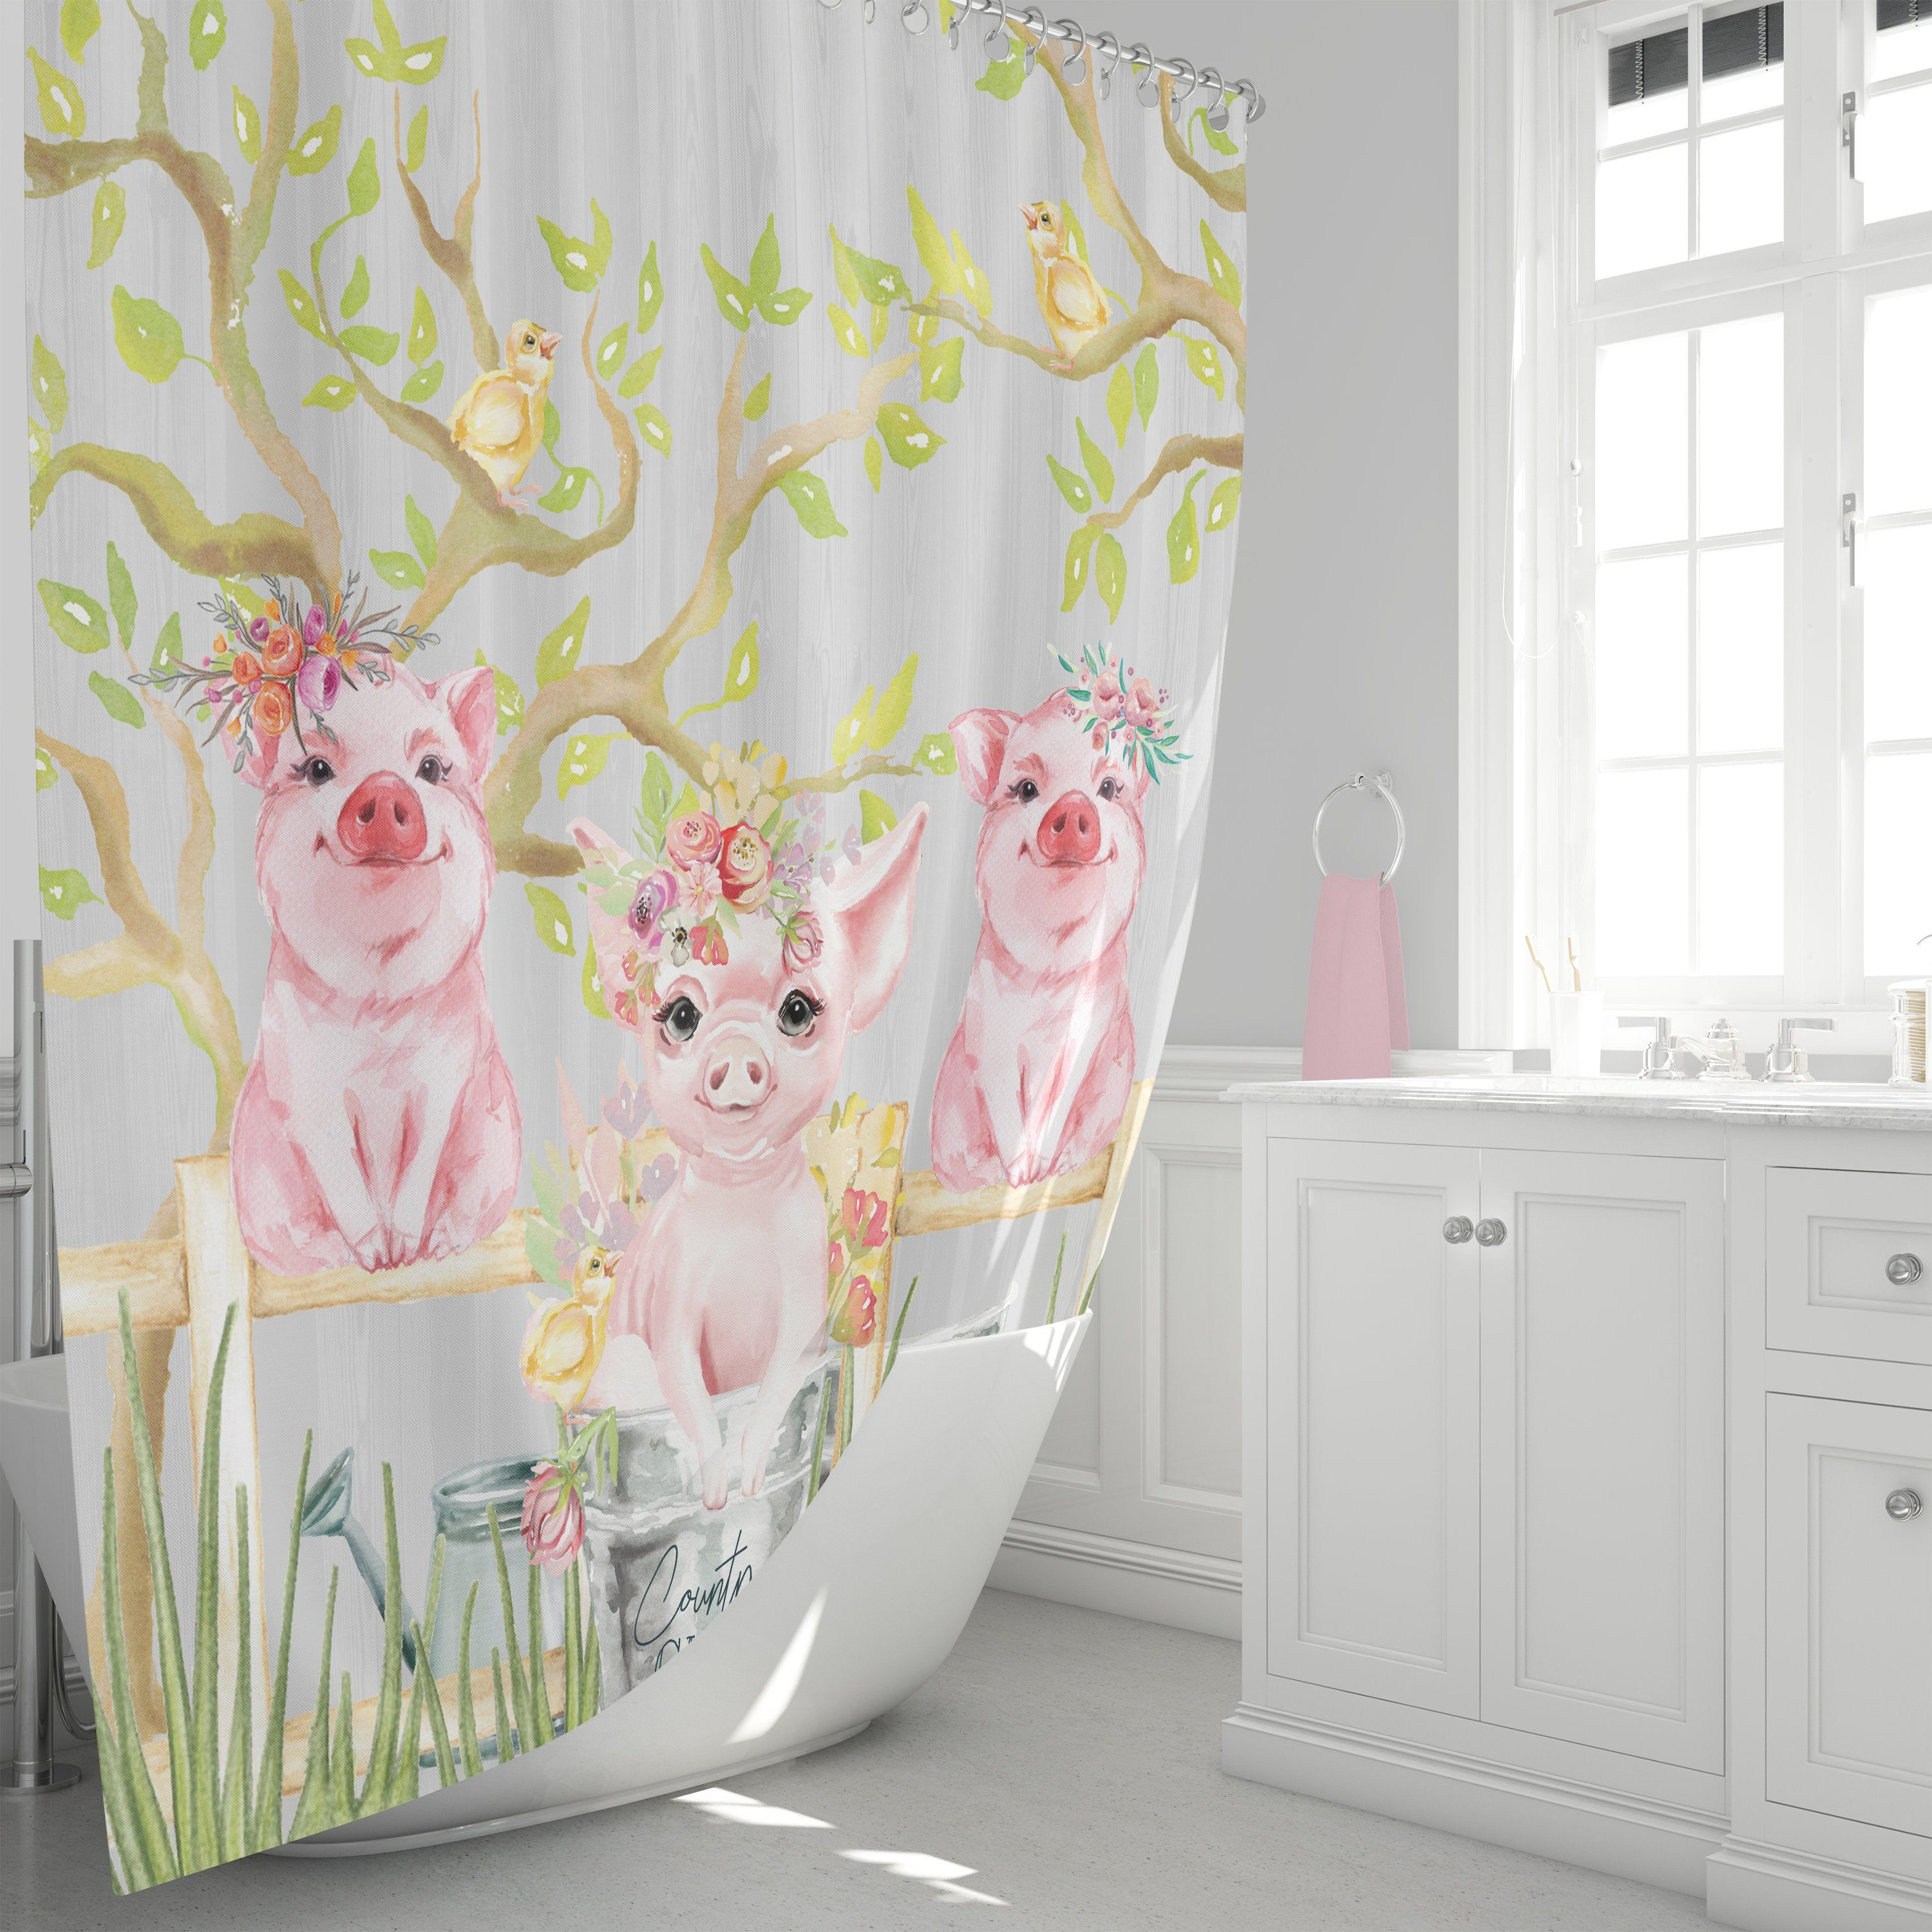 Little Pigs Shower Curtain, Country Chic Bathroom Decor